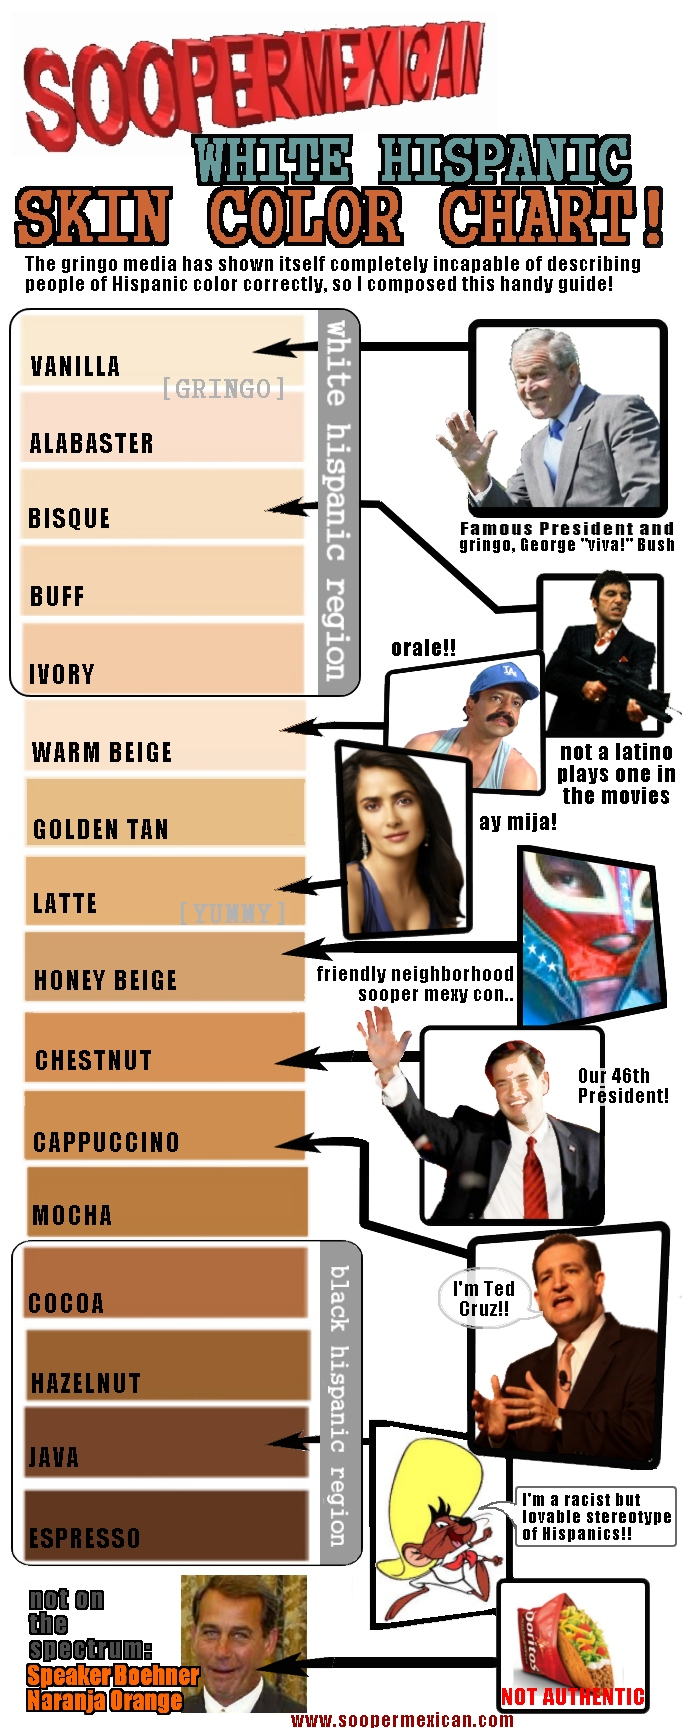 The sooper guide to white hispanic skin color for the gringo media nvjuhfo Images